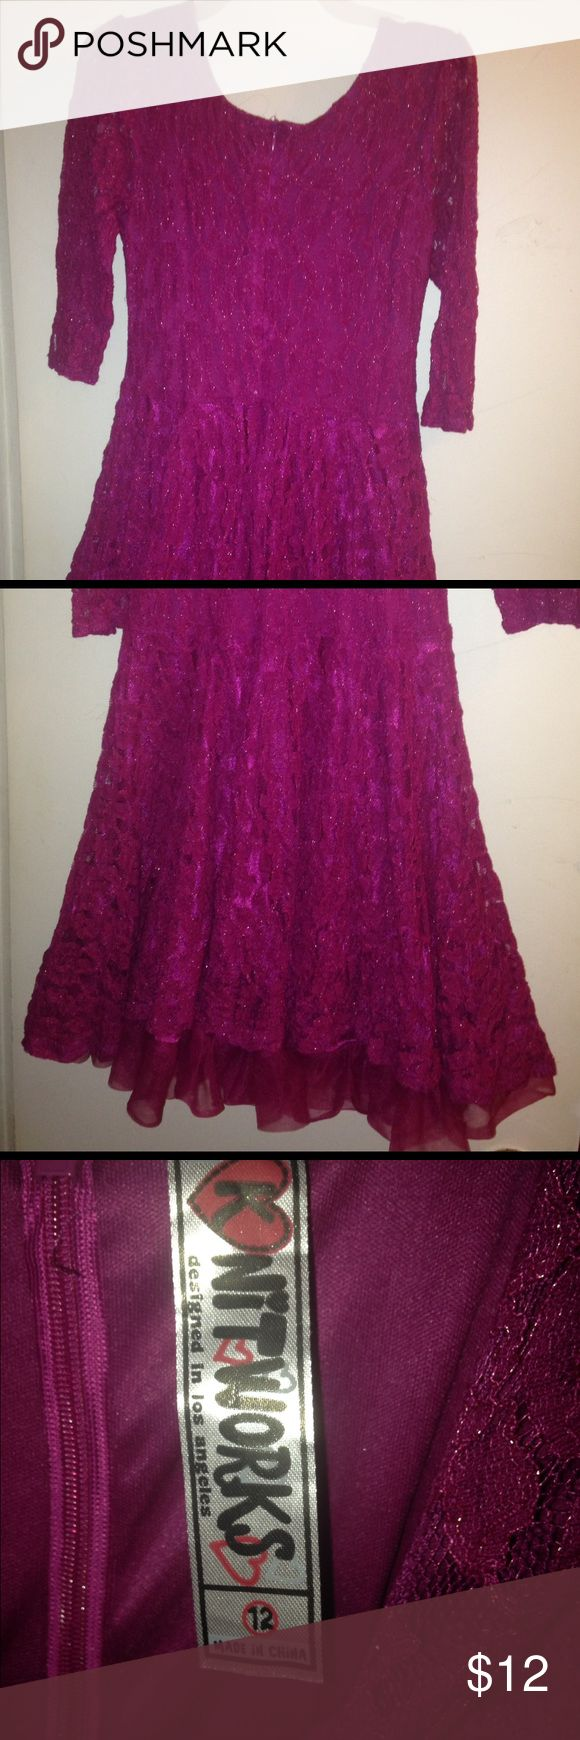 Knitworks Purple lace dress Knitworks purple lace dress. Layered tulle under skirt. Lined dress. Beautiful purple lace with light shimmer. Zippered back. EUC. Smoke free home. Knitworks Dresses